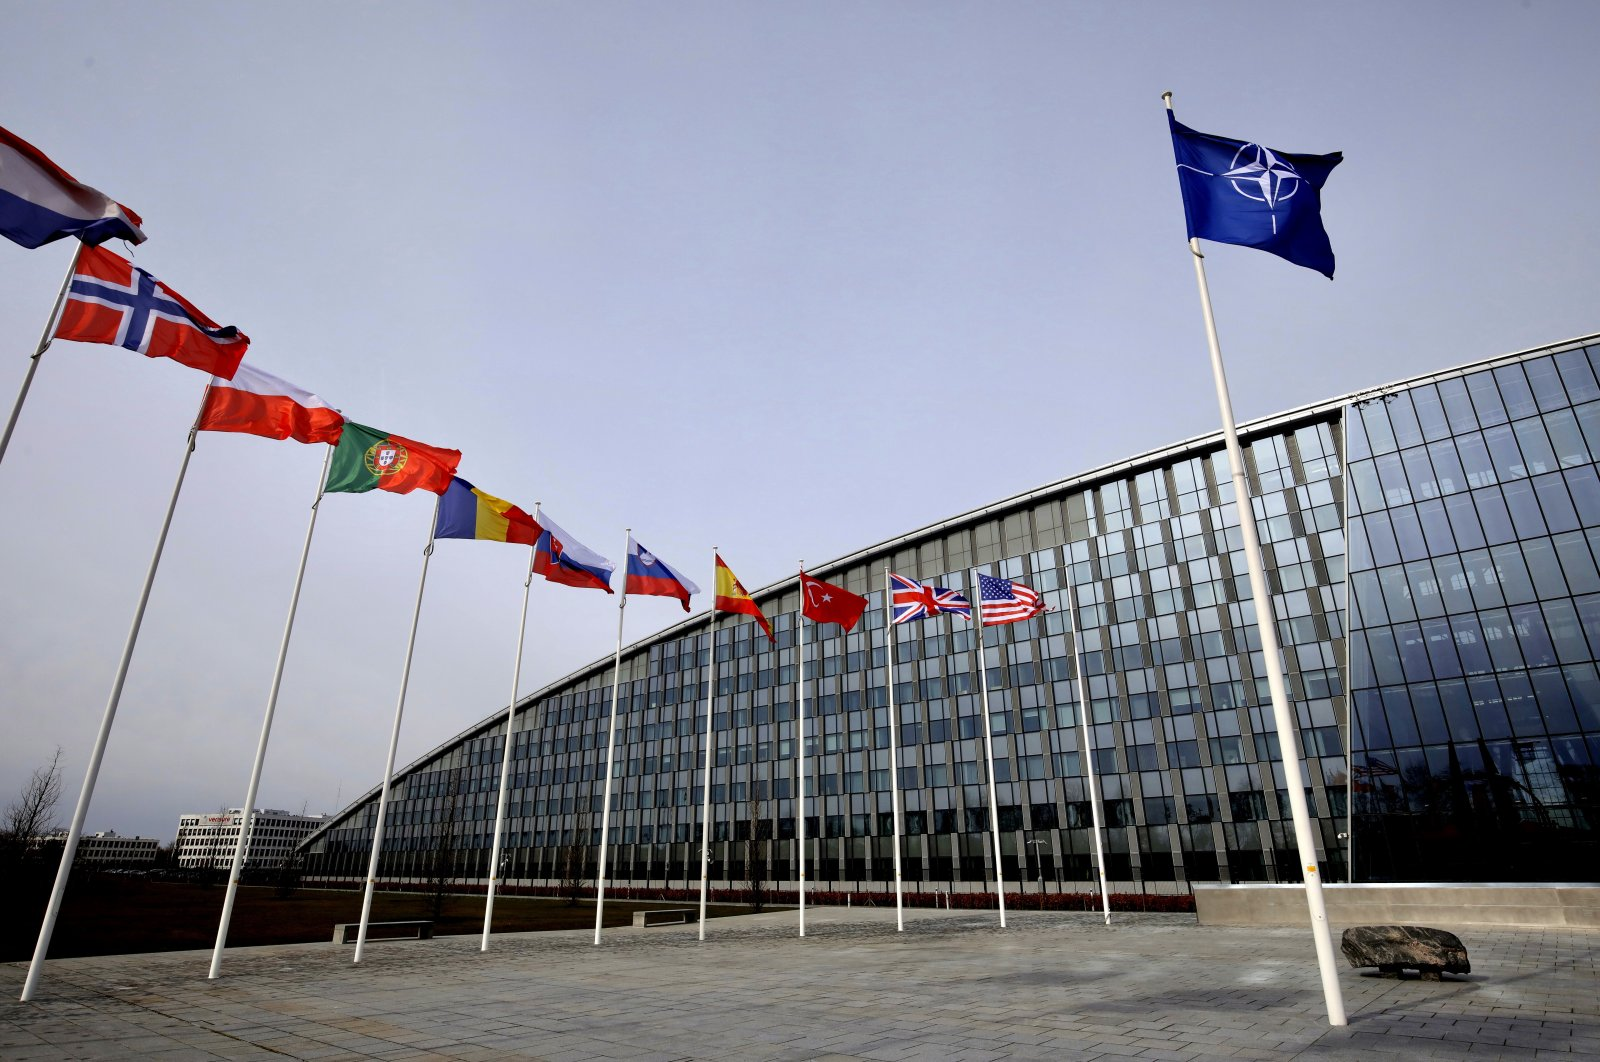 Flags of NATO members flap in the wind outside NATO headquarters in Brussels, Belgium, Feb. 28, 2020. (AP Photo)